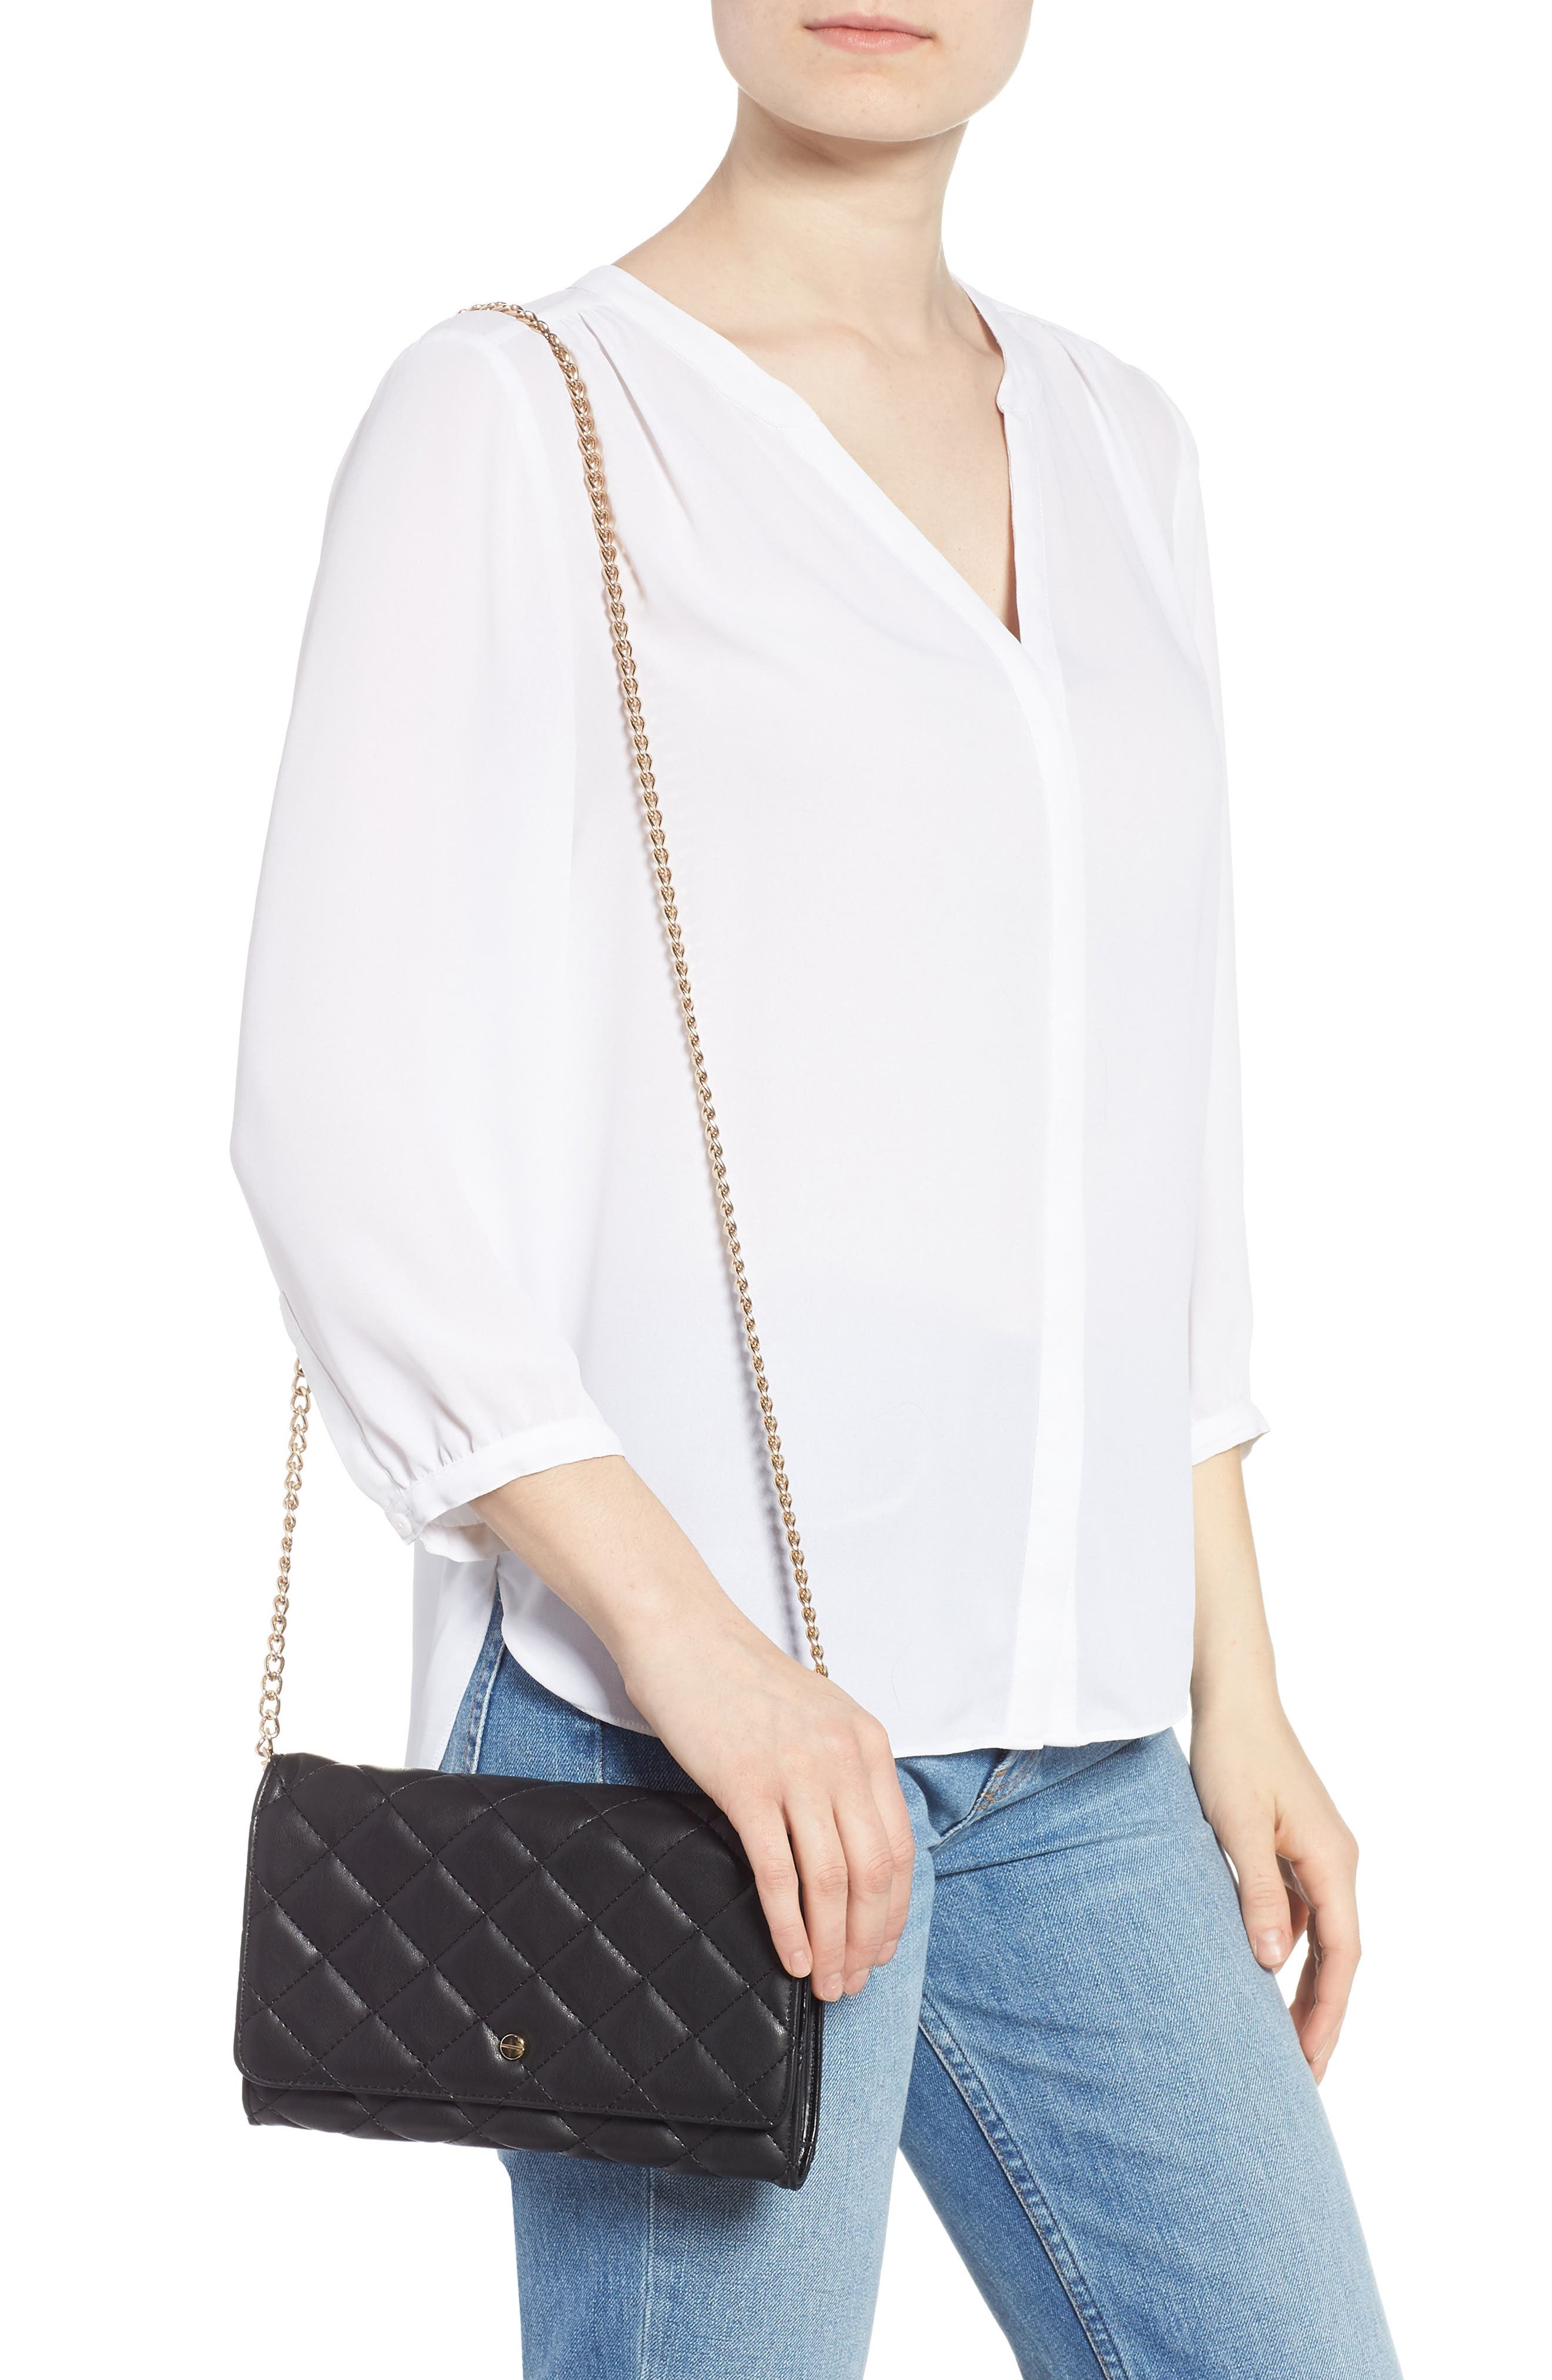 Mali + Lili Ciara Quilted Vegan Leather Convertible Clutch,                             Alternate thumbnail 2, color,                             BLACK